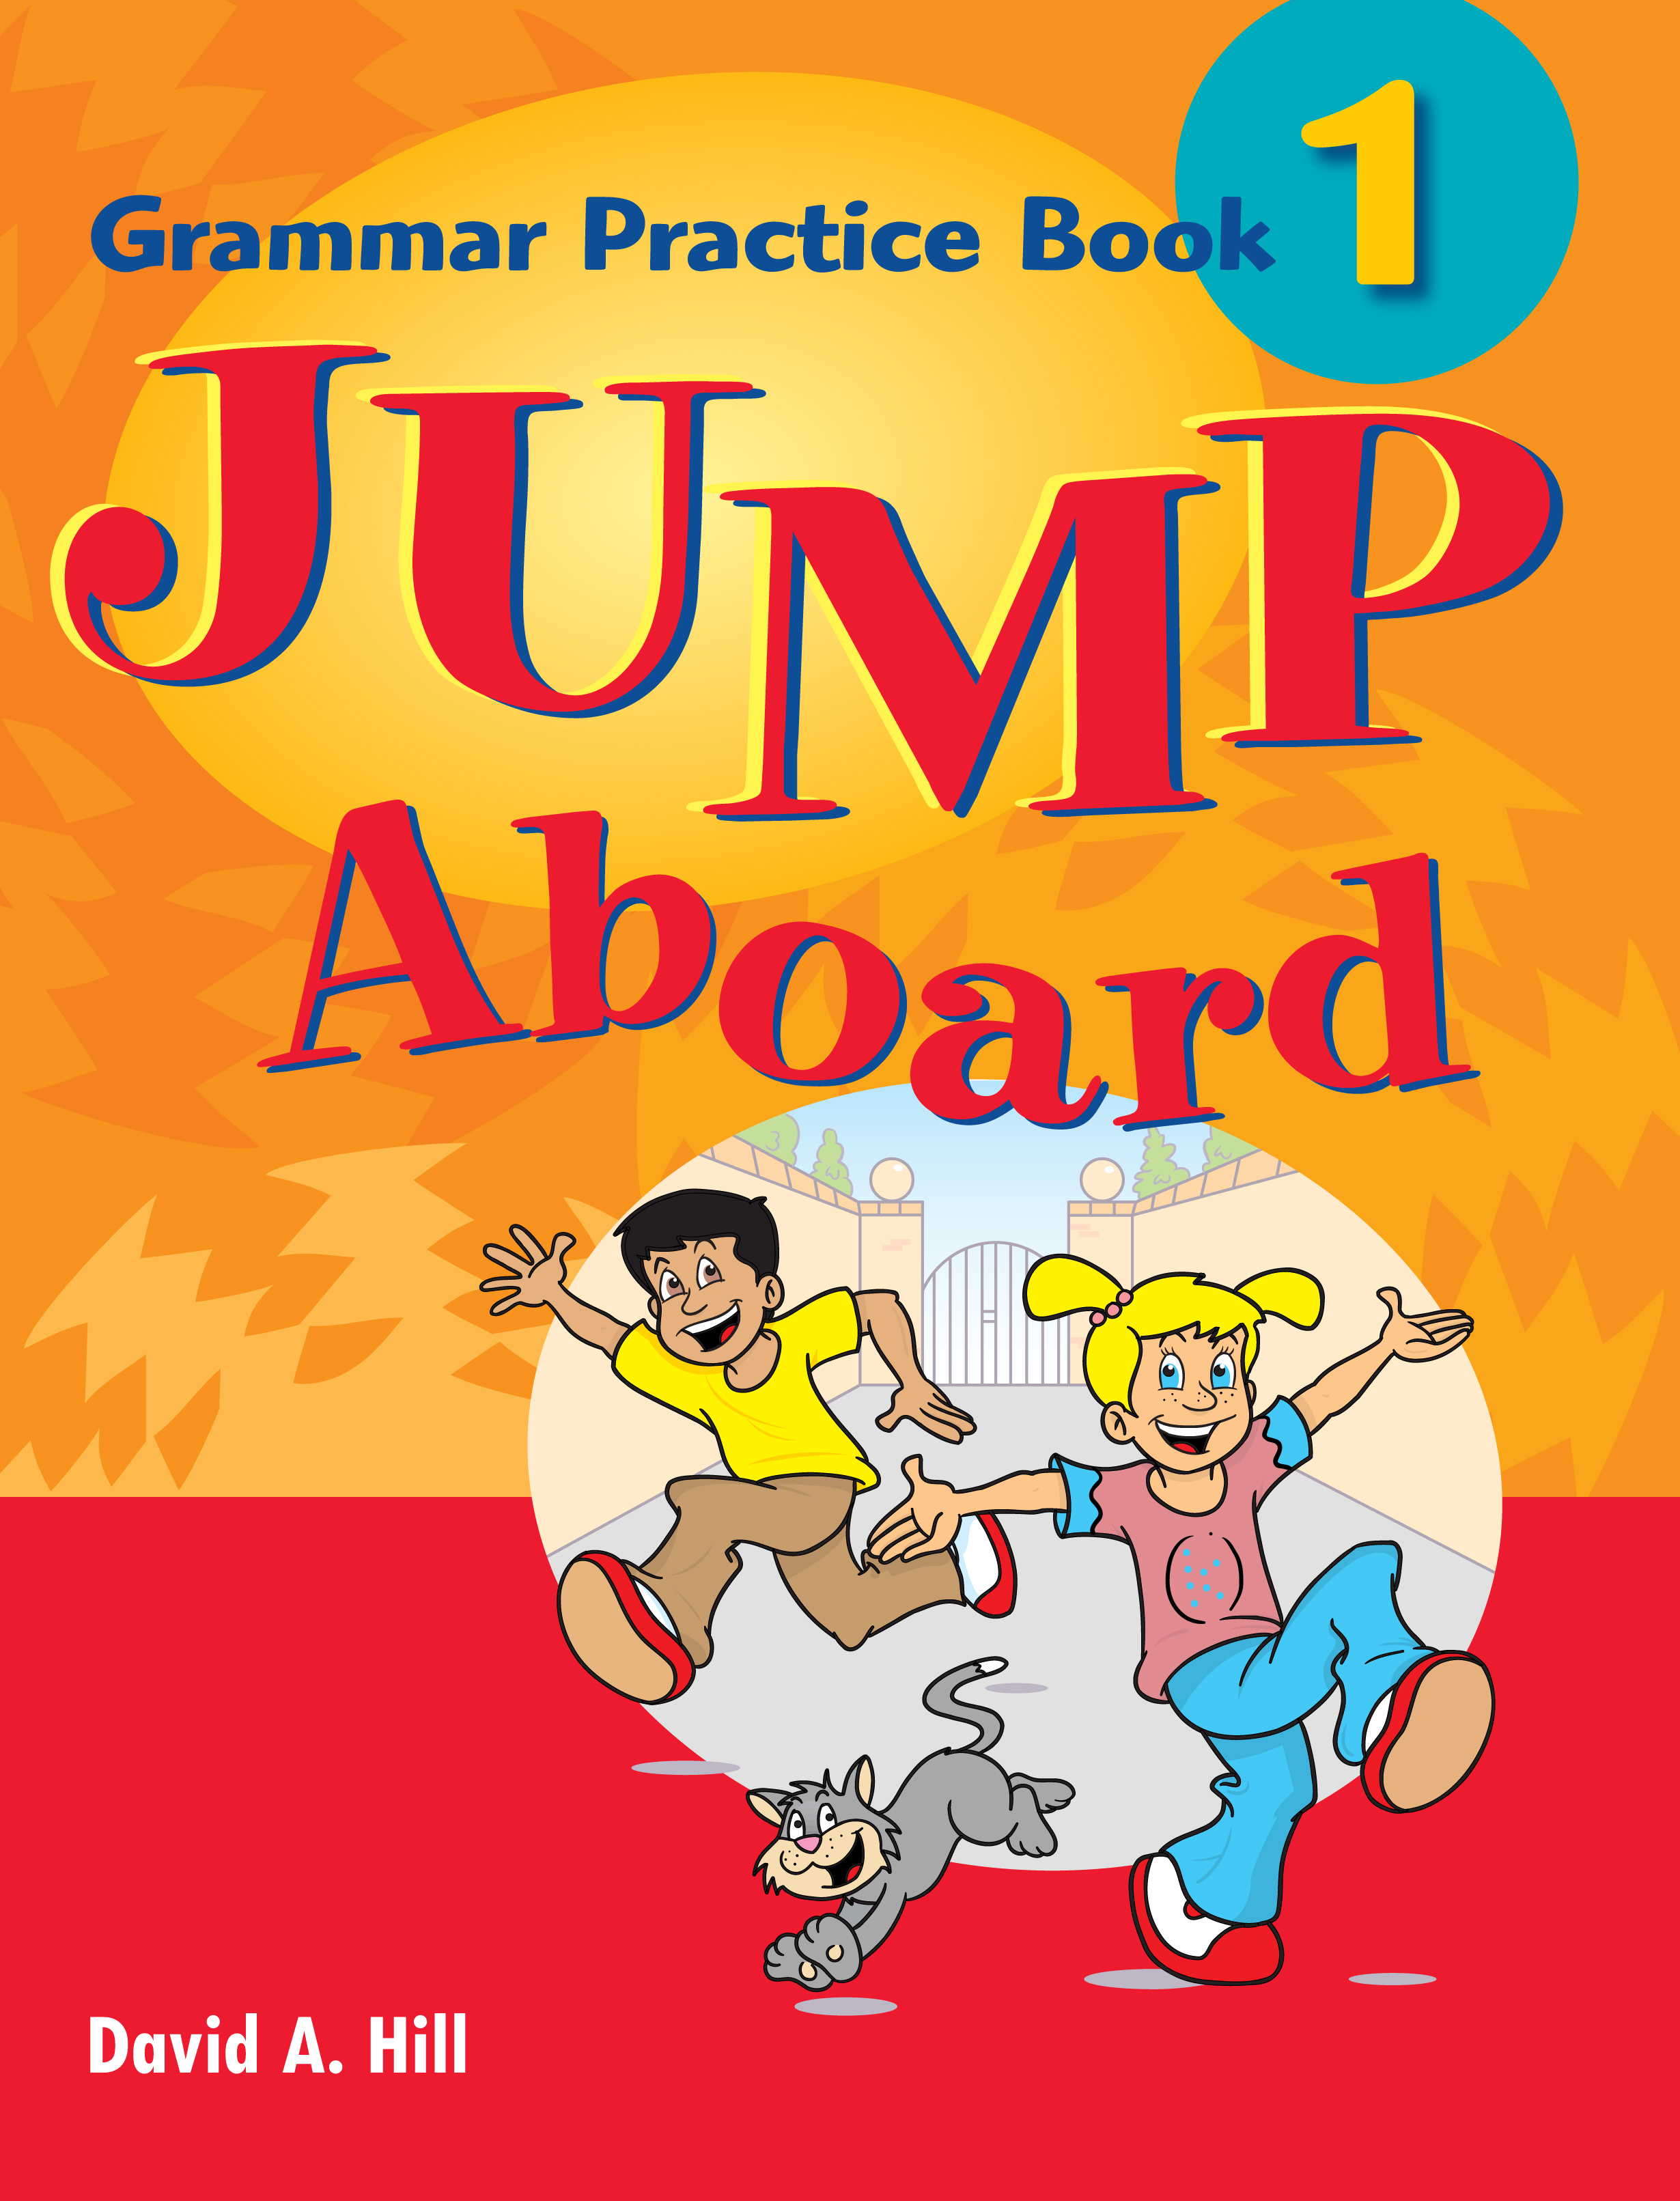 Students 1 jump book aboard